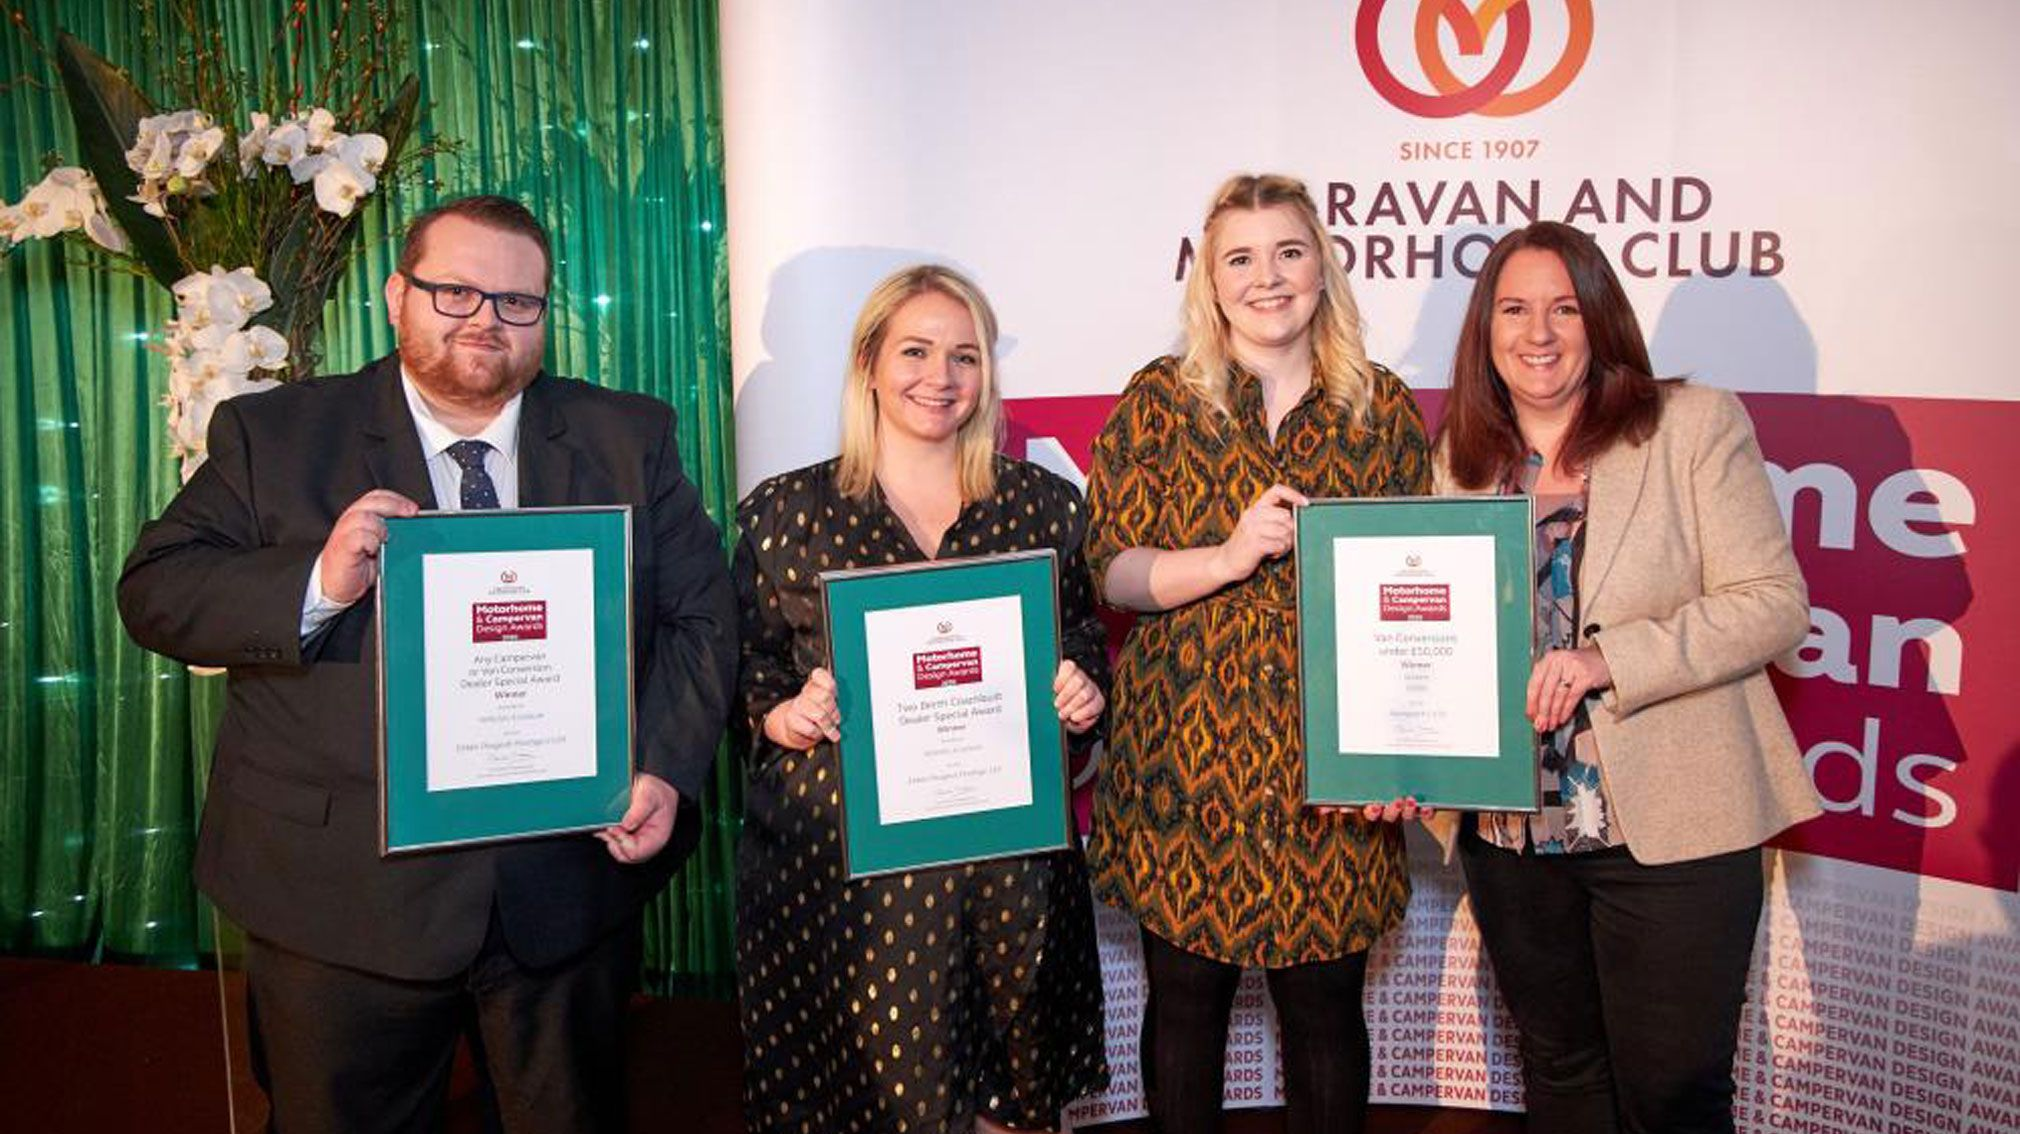 Elddis team receiving three caravan and motorhome club awards